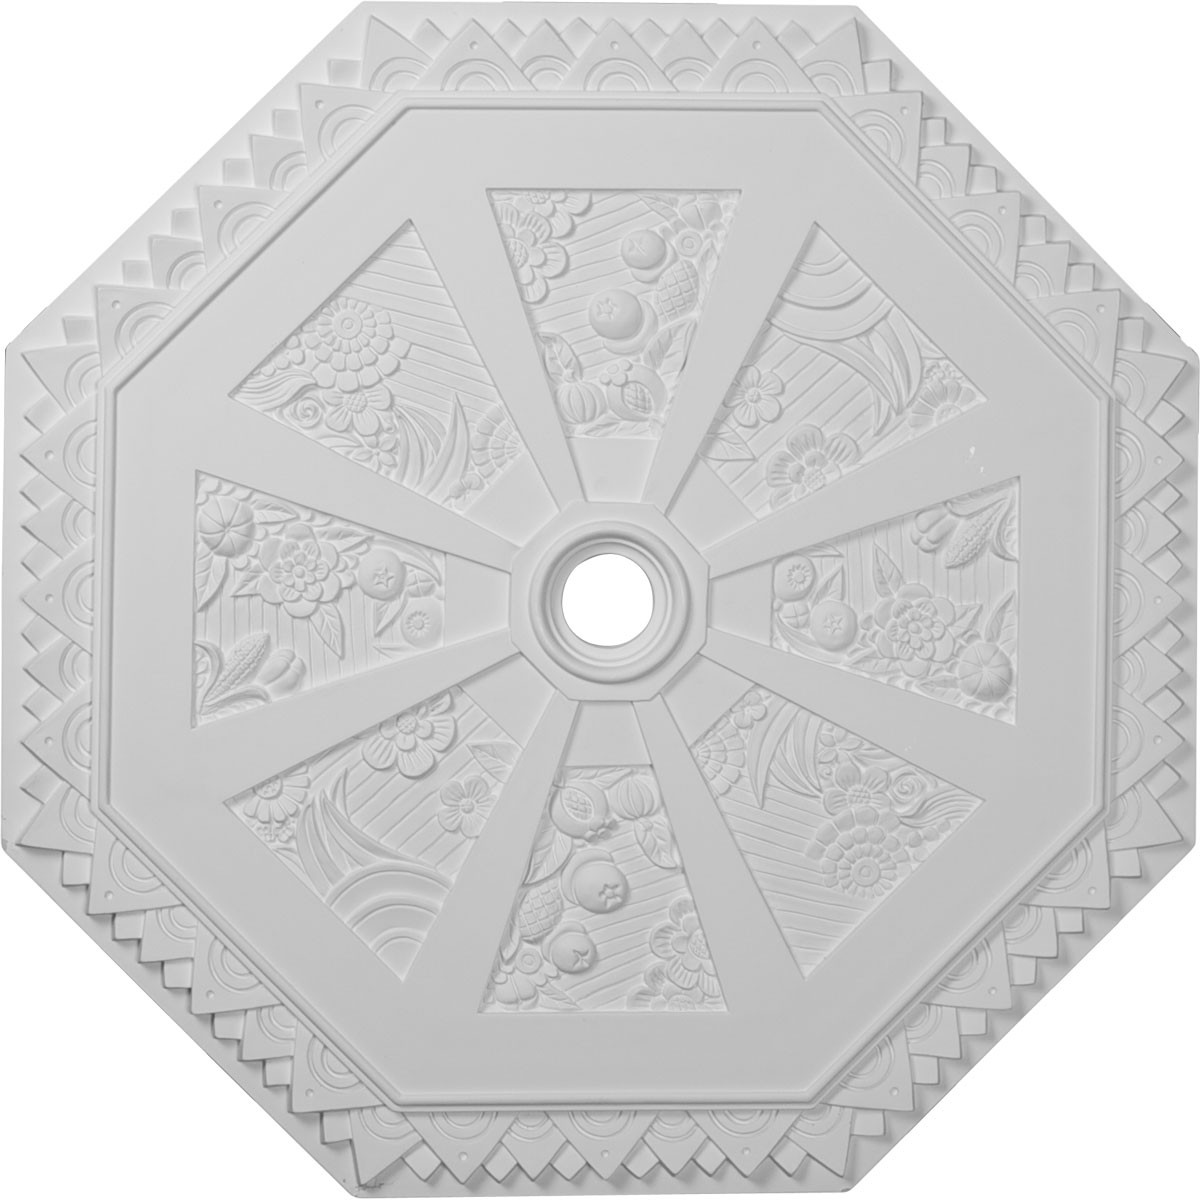 """EM-CM30SP - 29 1/8""""OD x 2 1/4""""ID x 1 1/8""""P Spring Octagonal Ceiling Medallion (Fits Canopies up to 3"""")"""